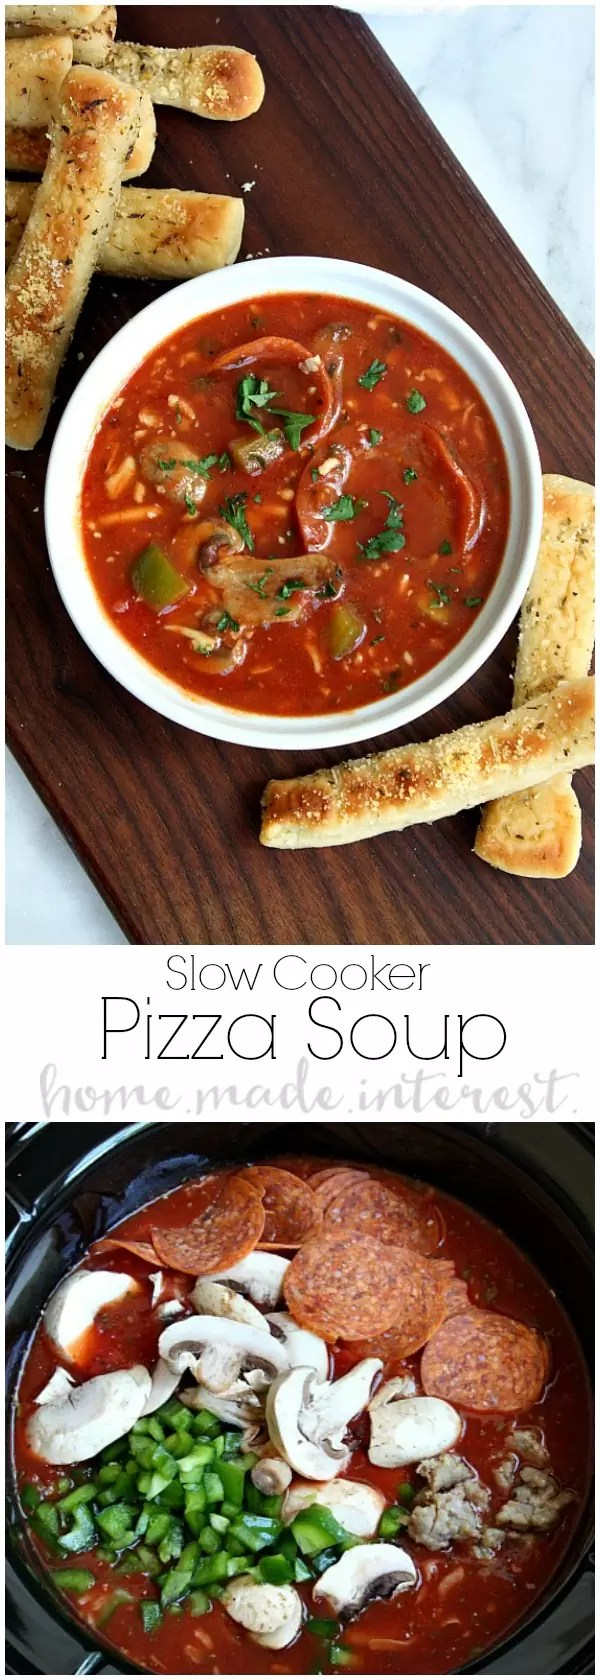 Put a new twist on family pizza night with this easy slow cooker soup recipe. Slow cooker pizza soup is a delicious crock pot tomato soup with all of the spices that give it that pizza sauce flavor. Add in stringy mozzarella cheese, and all of your favorite pizza toppings and you have a slow cooker soup recipe that the whole family will love.